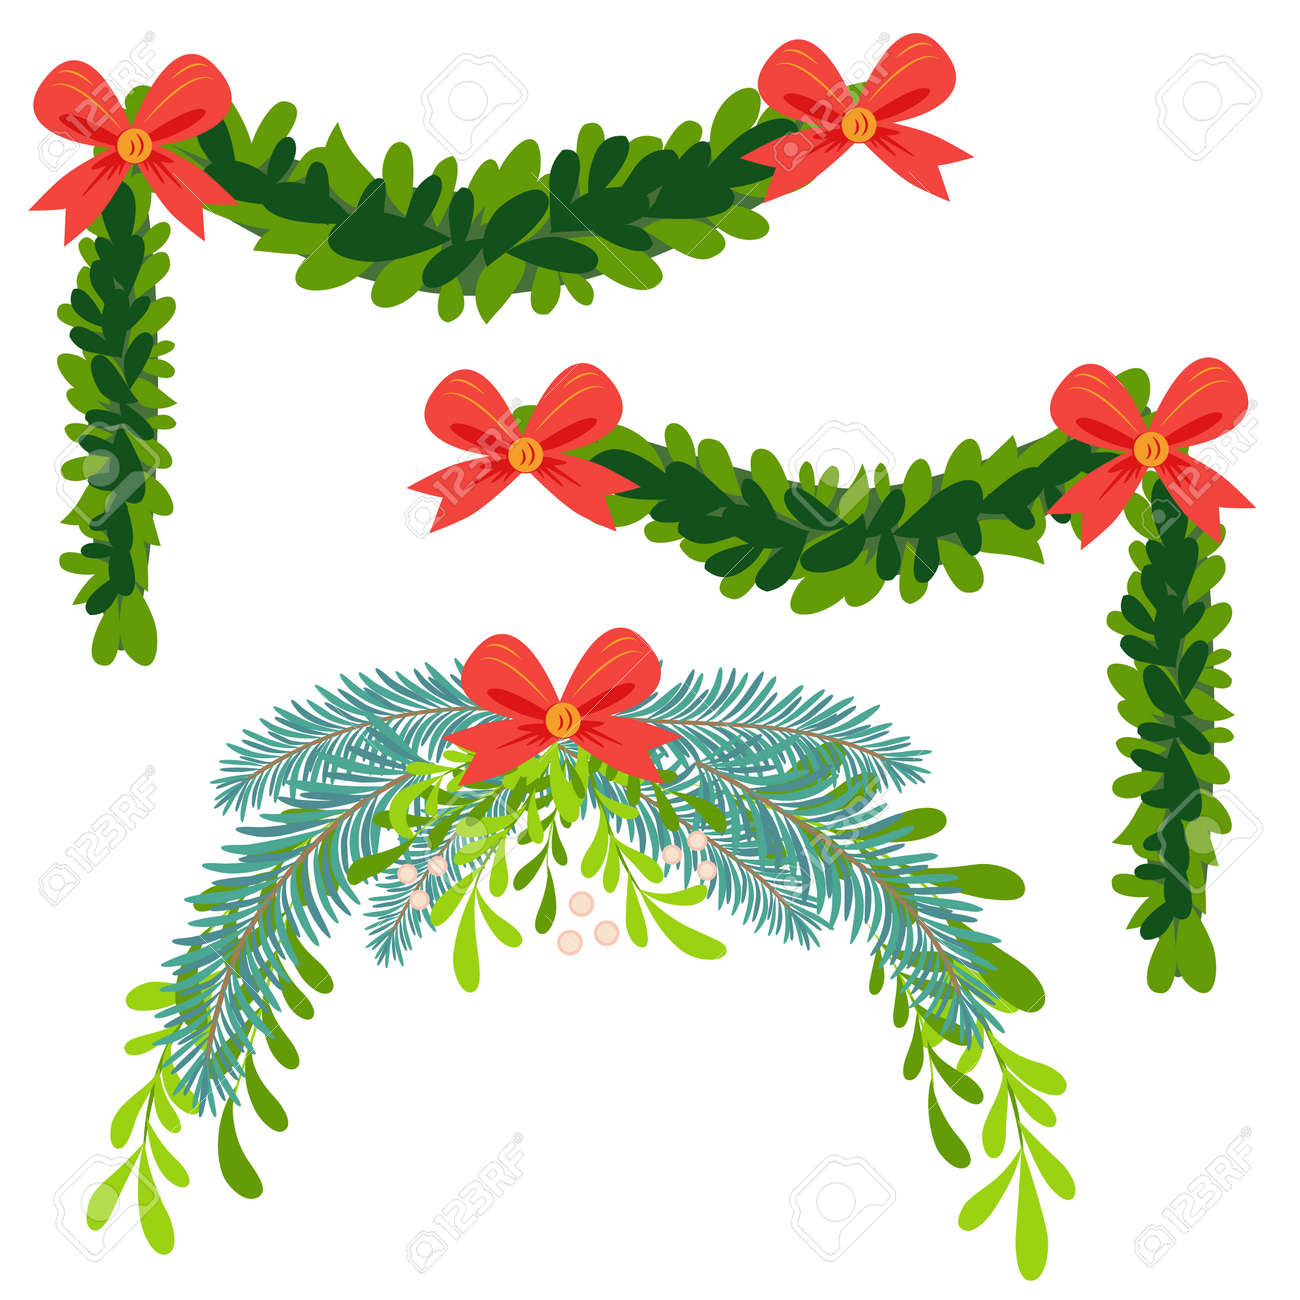 Christmas wreath of holly with red berries. Green leaf. New Year holiday celebration in December - 170465262